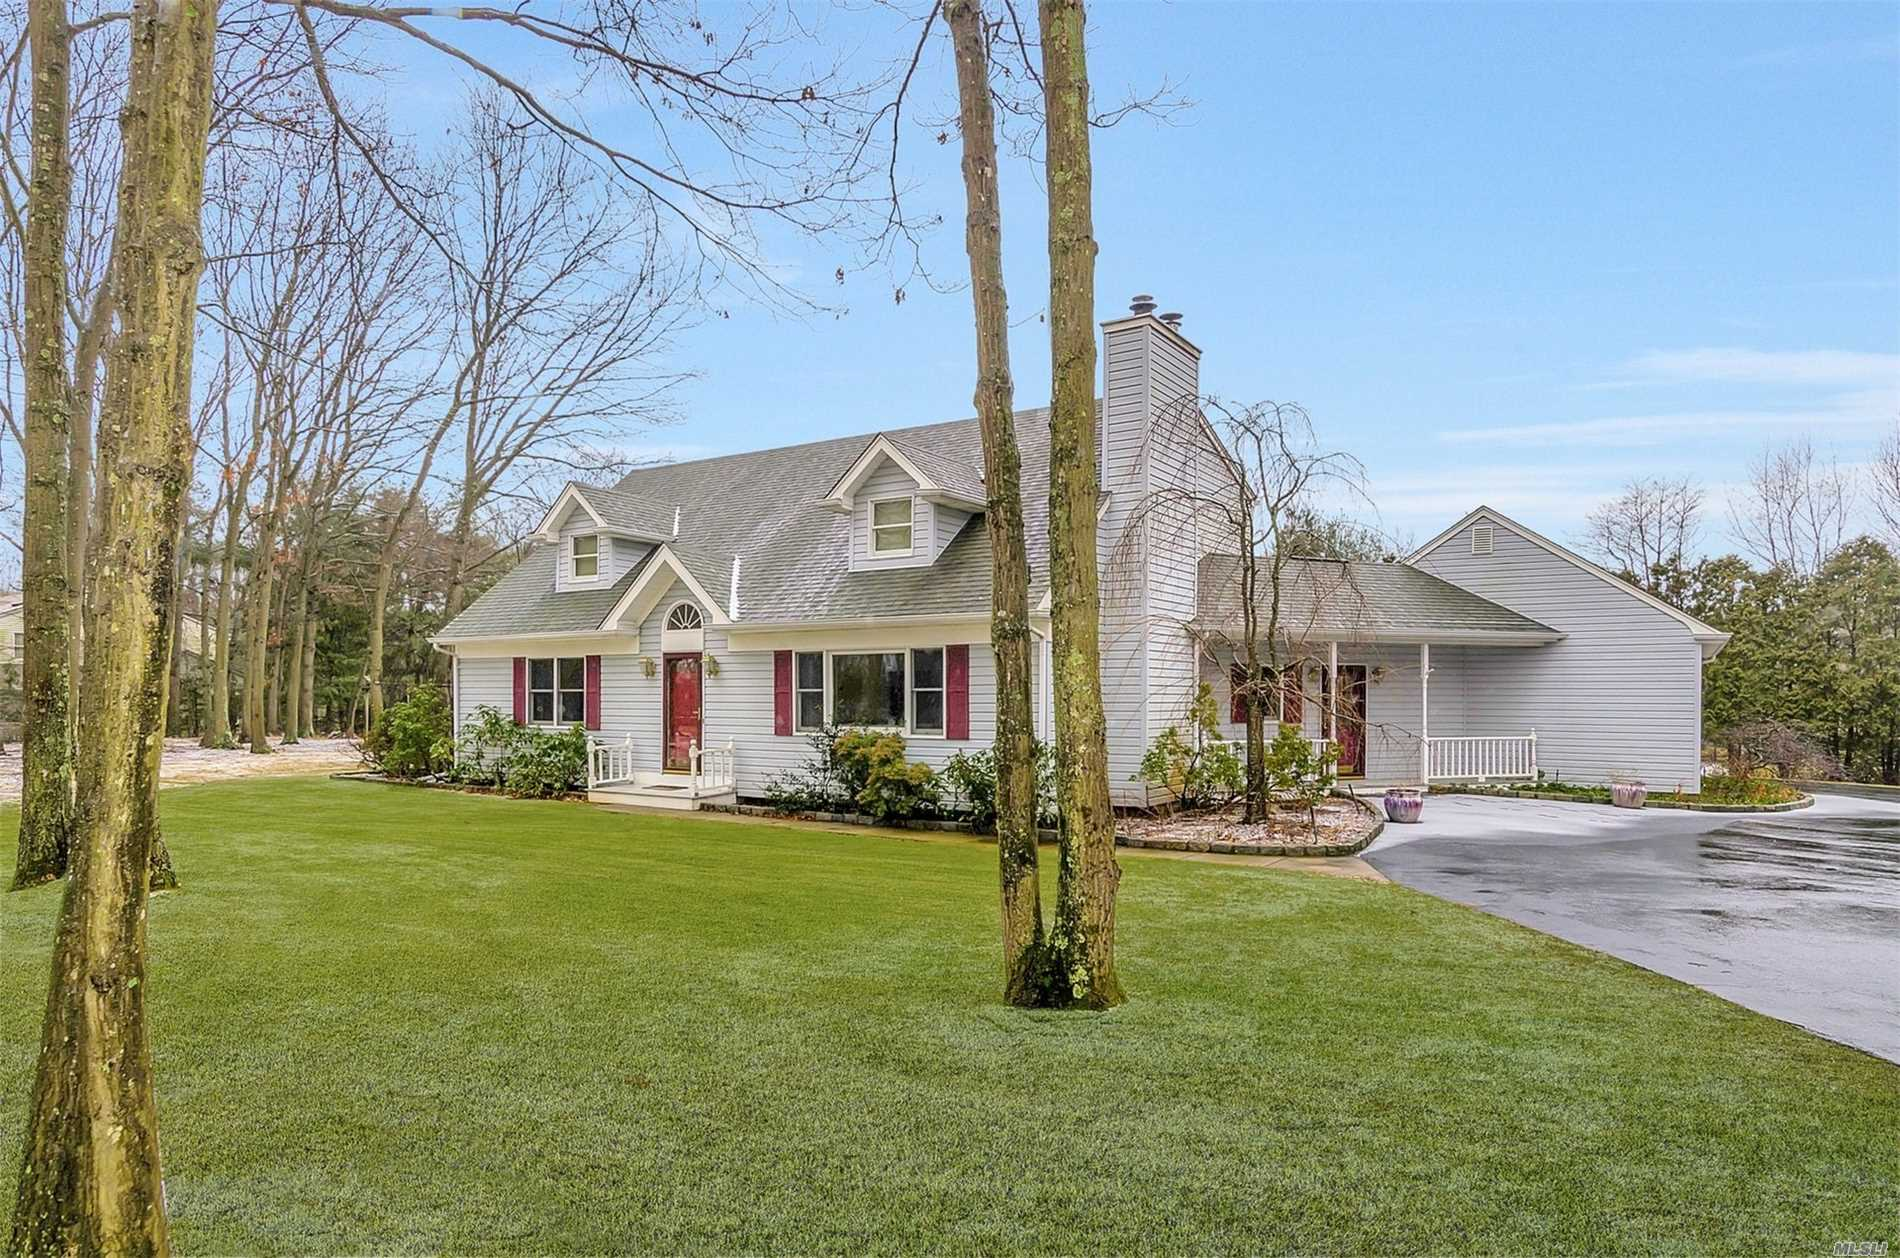 Custom Built Cape-Style Contemporary Home Set In The Quiet, Private Wading River Acres Community. Here You'll Find Real Oak Flooring Downstairs And In The Large 2nd Floor Den. Master Sized Bedrooms Both Upstairs And Down. This Home Has A Fireplace, 2 Zones Of Central Air, Vaulted Ceilings And Sits On A Lovely Mature Treed Property. It Has 2.5 Baths, A 2.5 Car Garage, A Part Finished Basement, Multi-Car Circular Driveway Parking, And Is Located On A Shy Acre Of Land. Come See It Soon!!